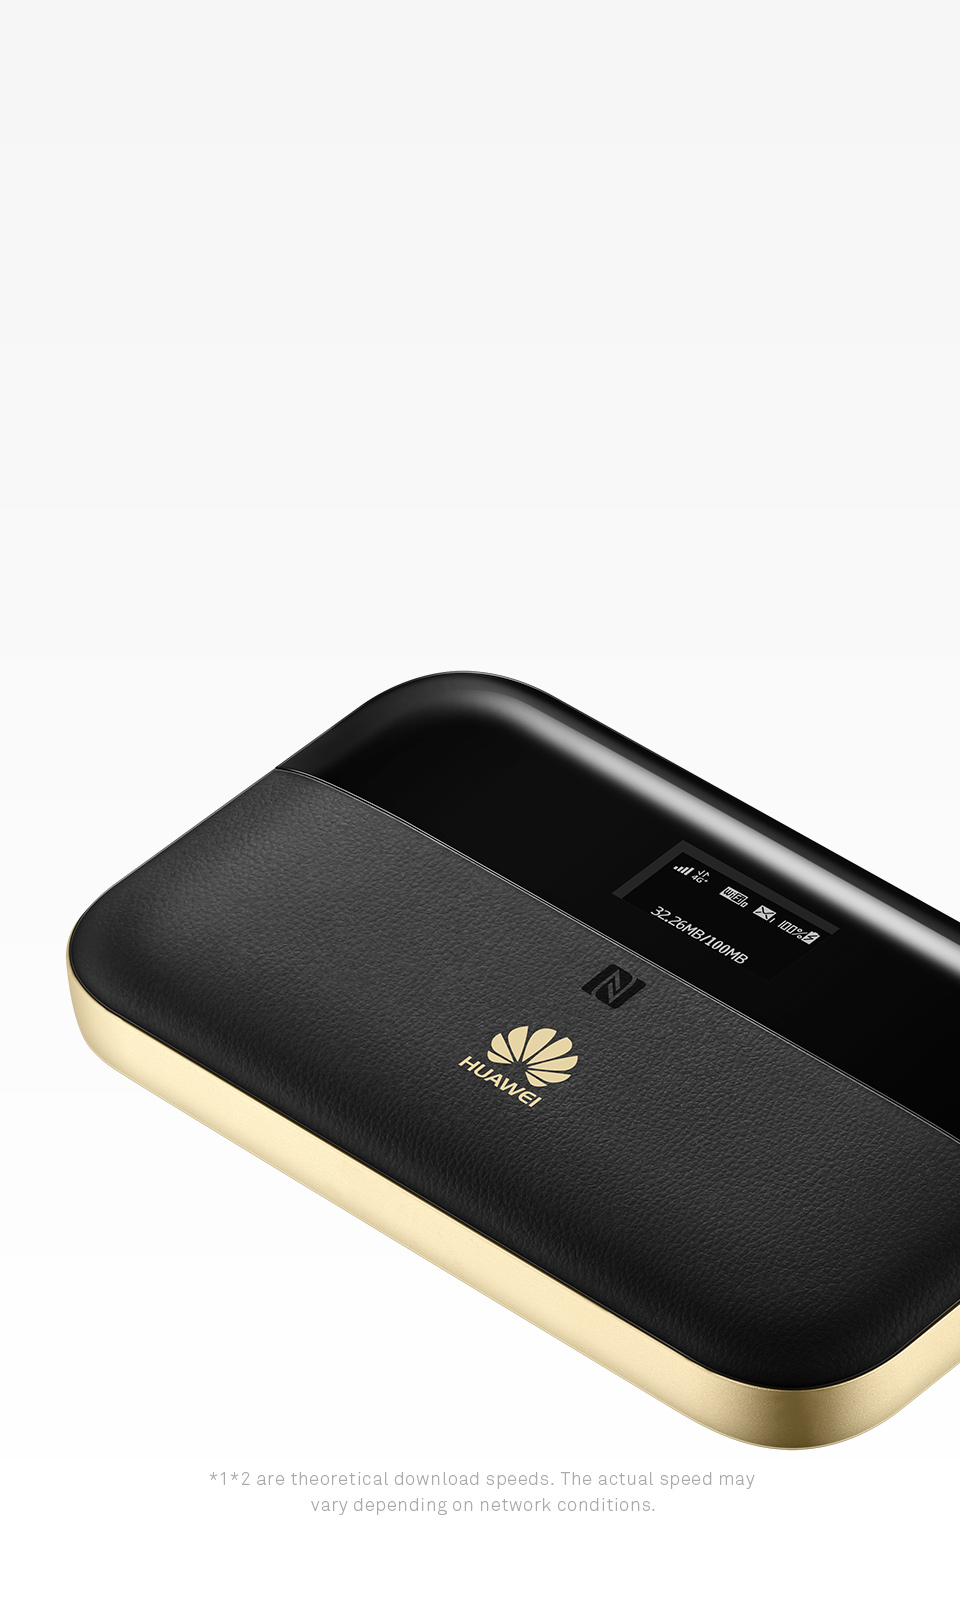 HUAWEI Mobile WiFi 2 Pro, 4G+ network, mobile broadband | HUAWEI Global